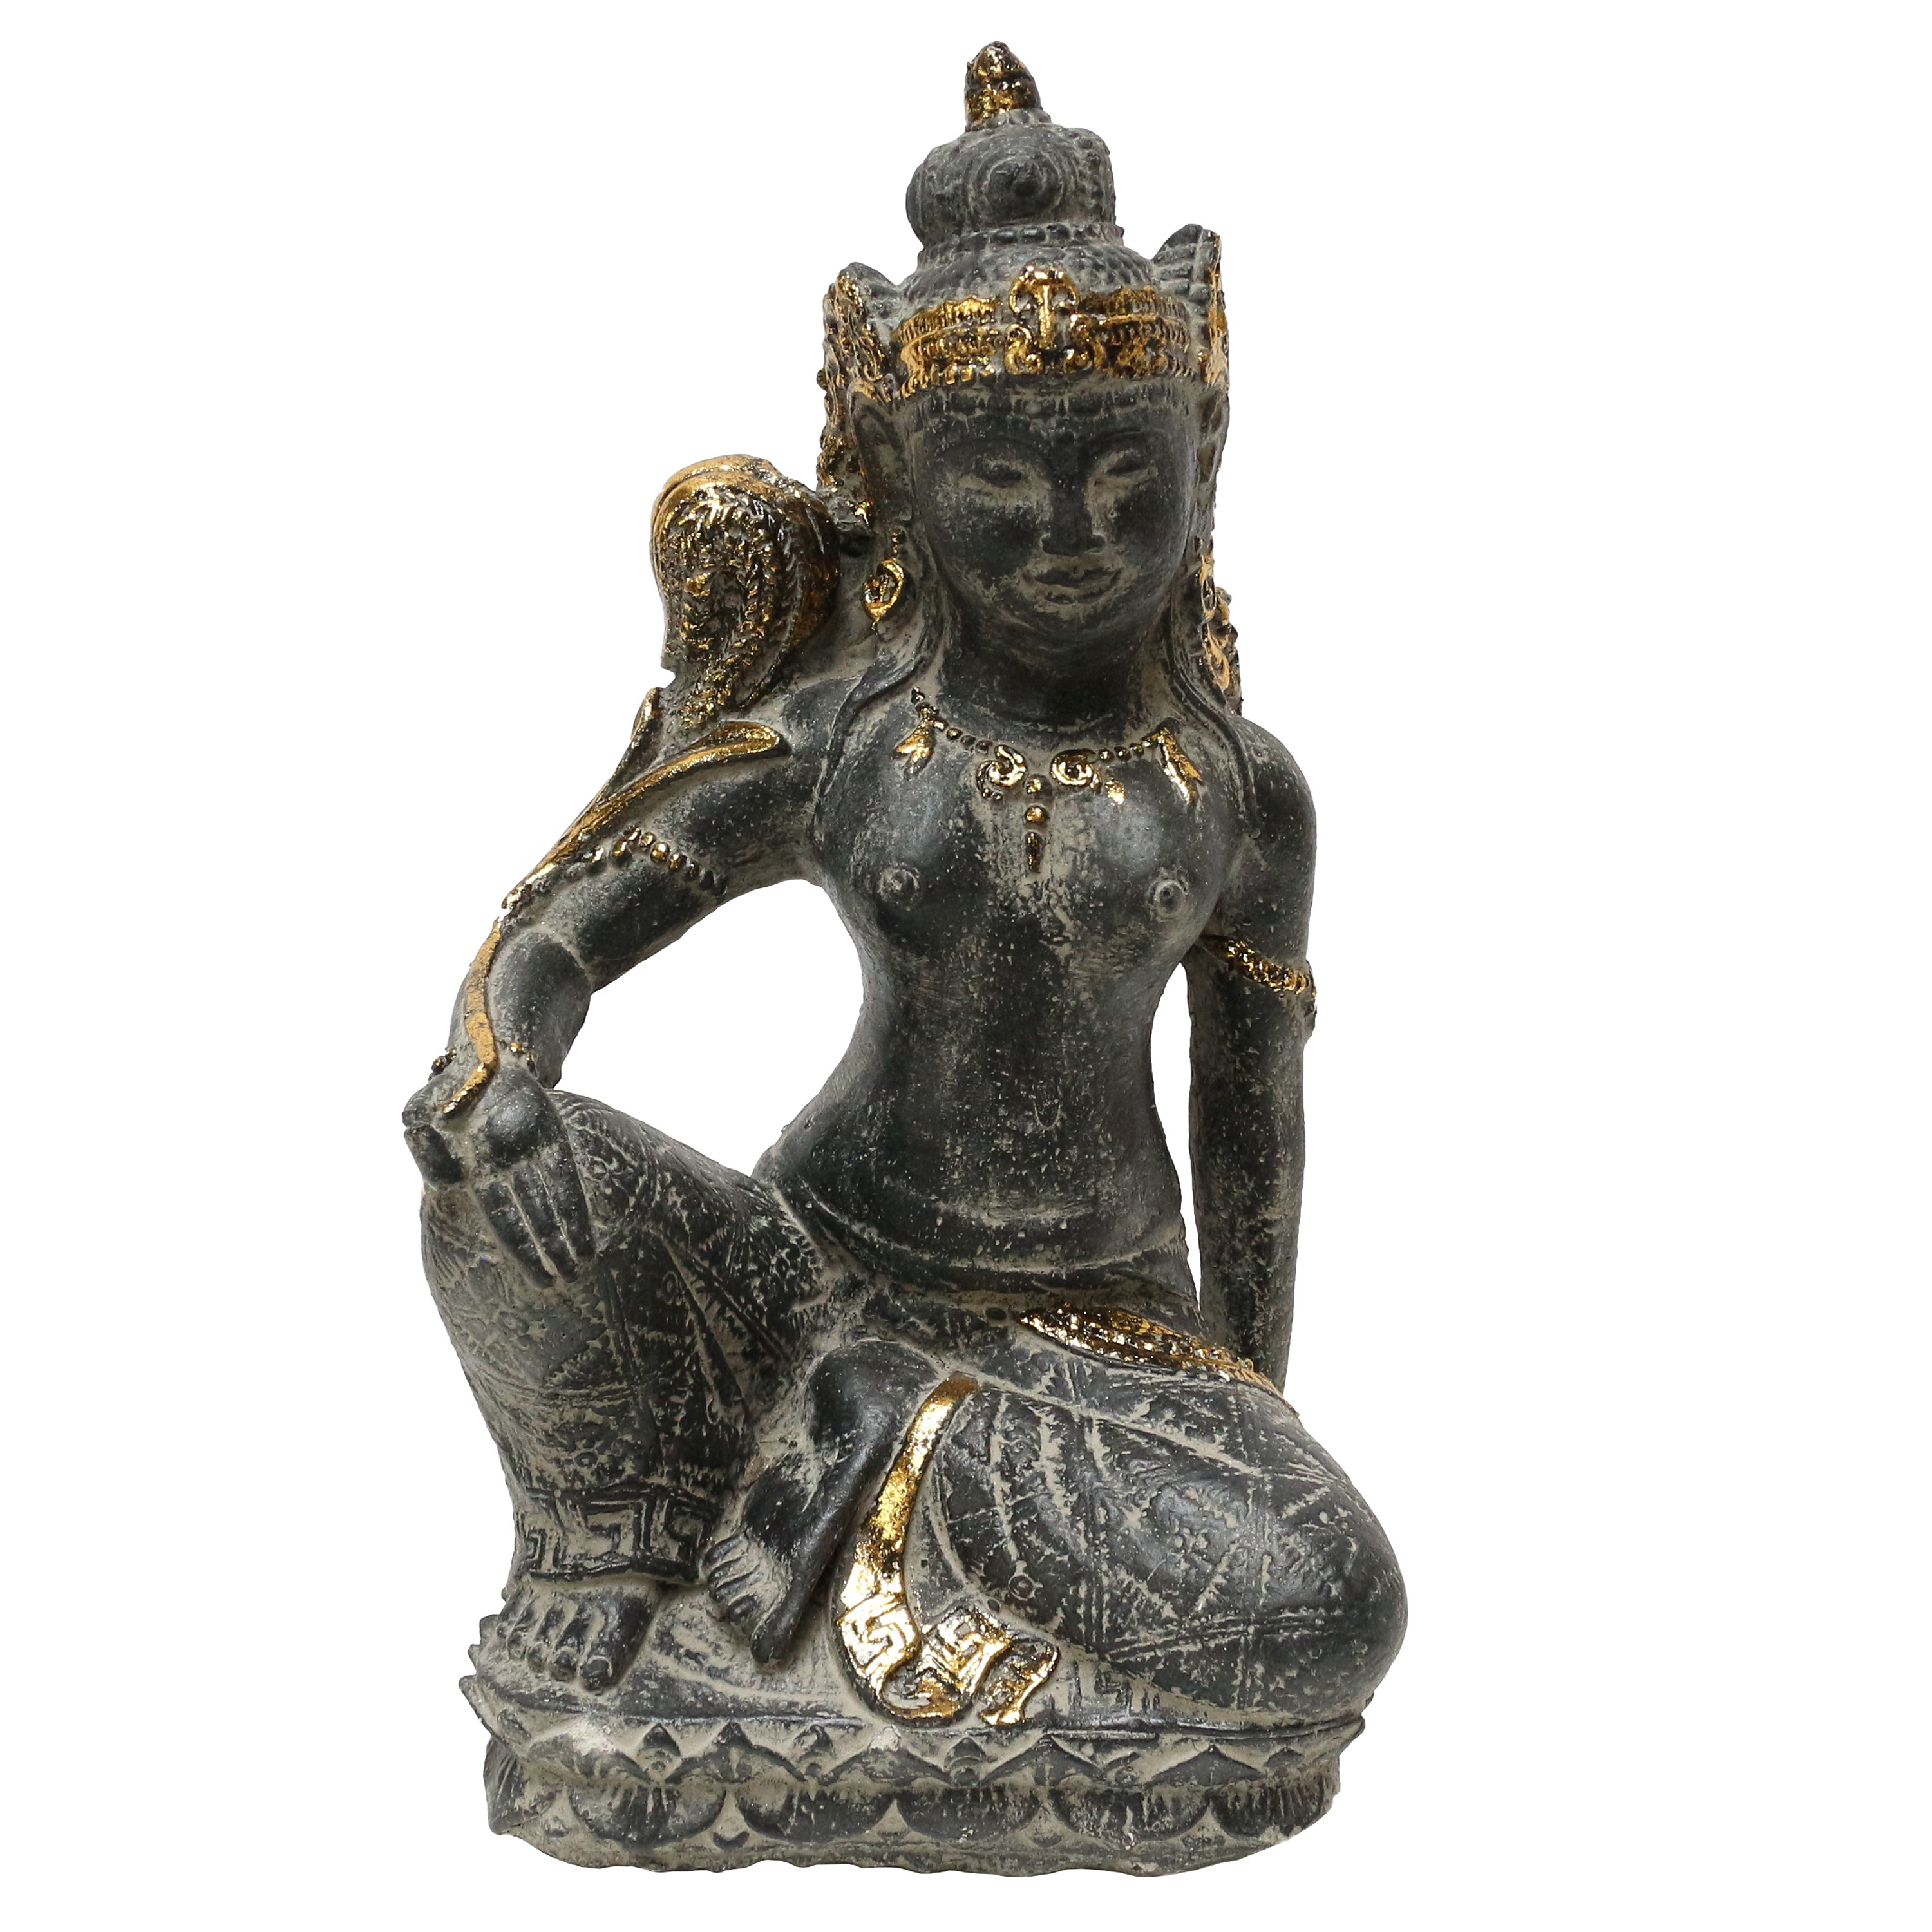 shiva steinfigur buddha figur skulptur lavasand indonesien. Black Bedroom Furniture Sets. Home Design Ideas